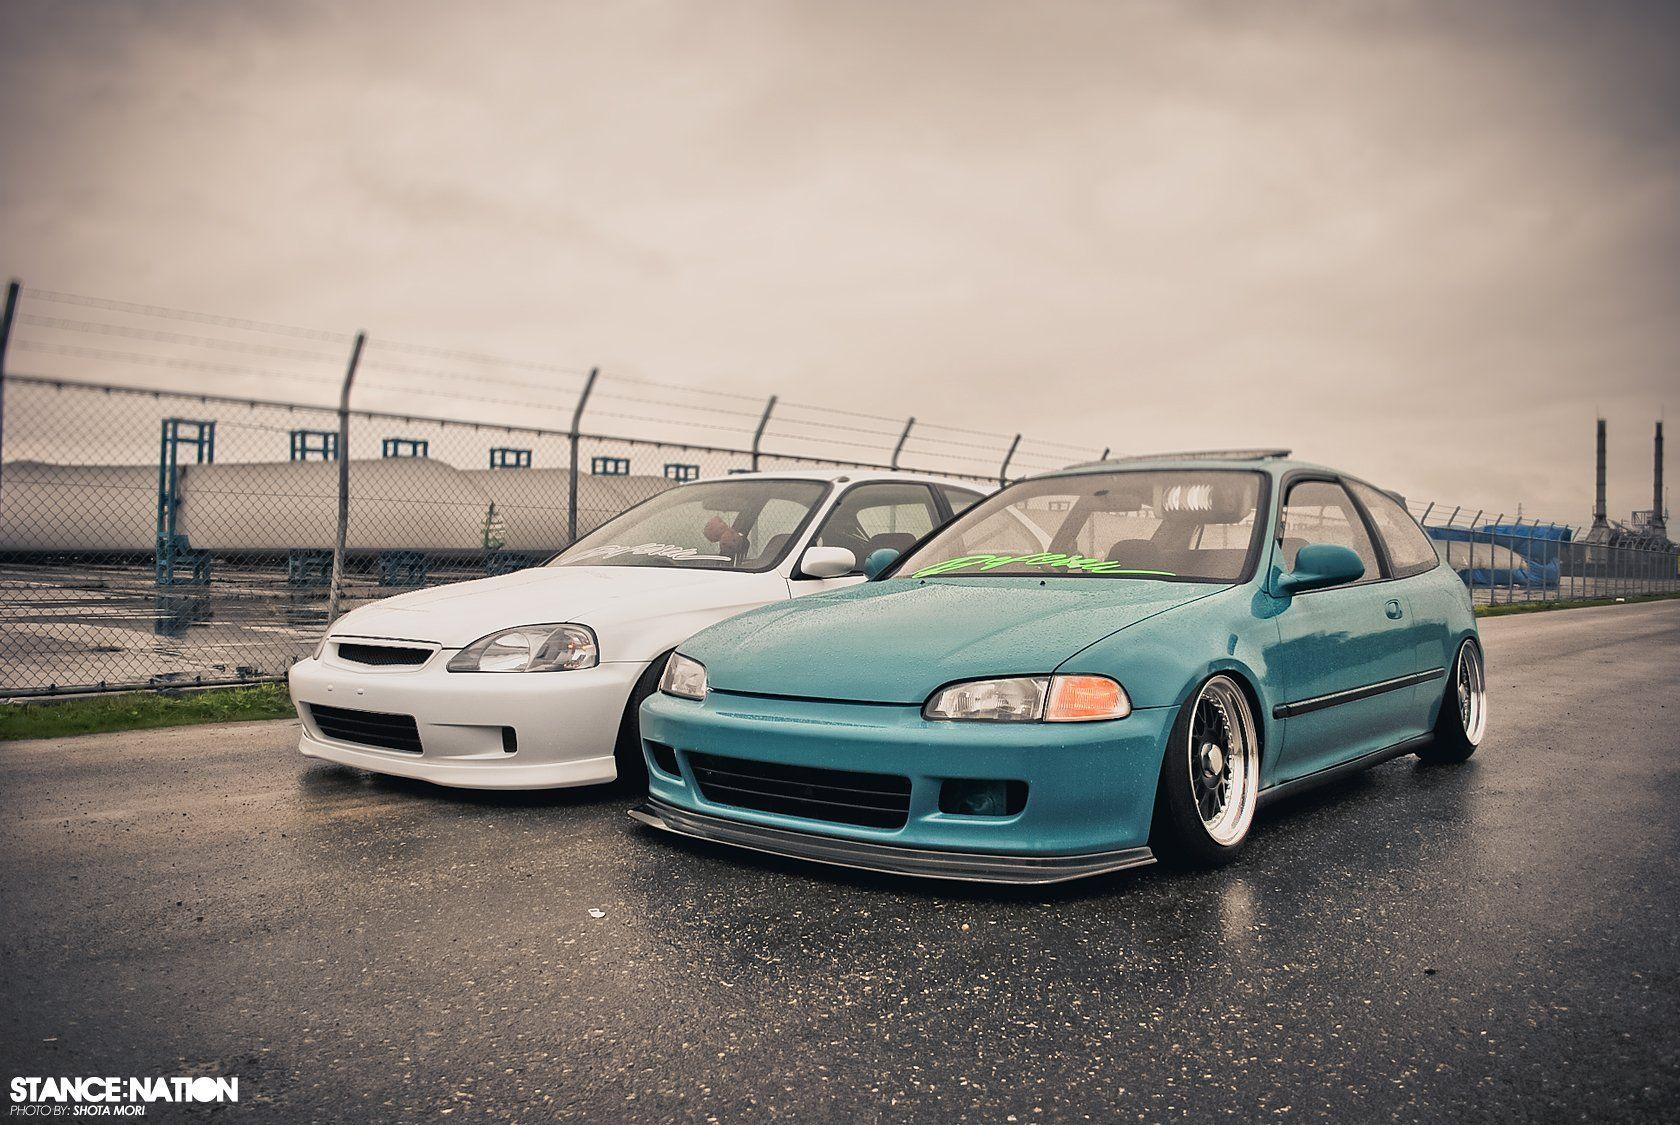 HONDA EG6 Civic tuning custom wallpapers